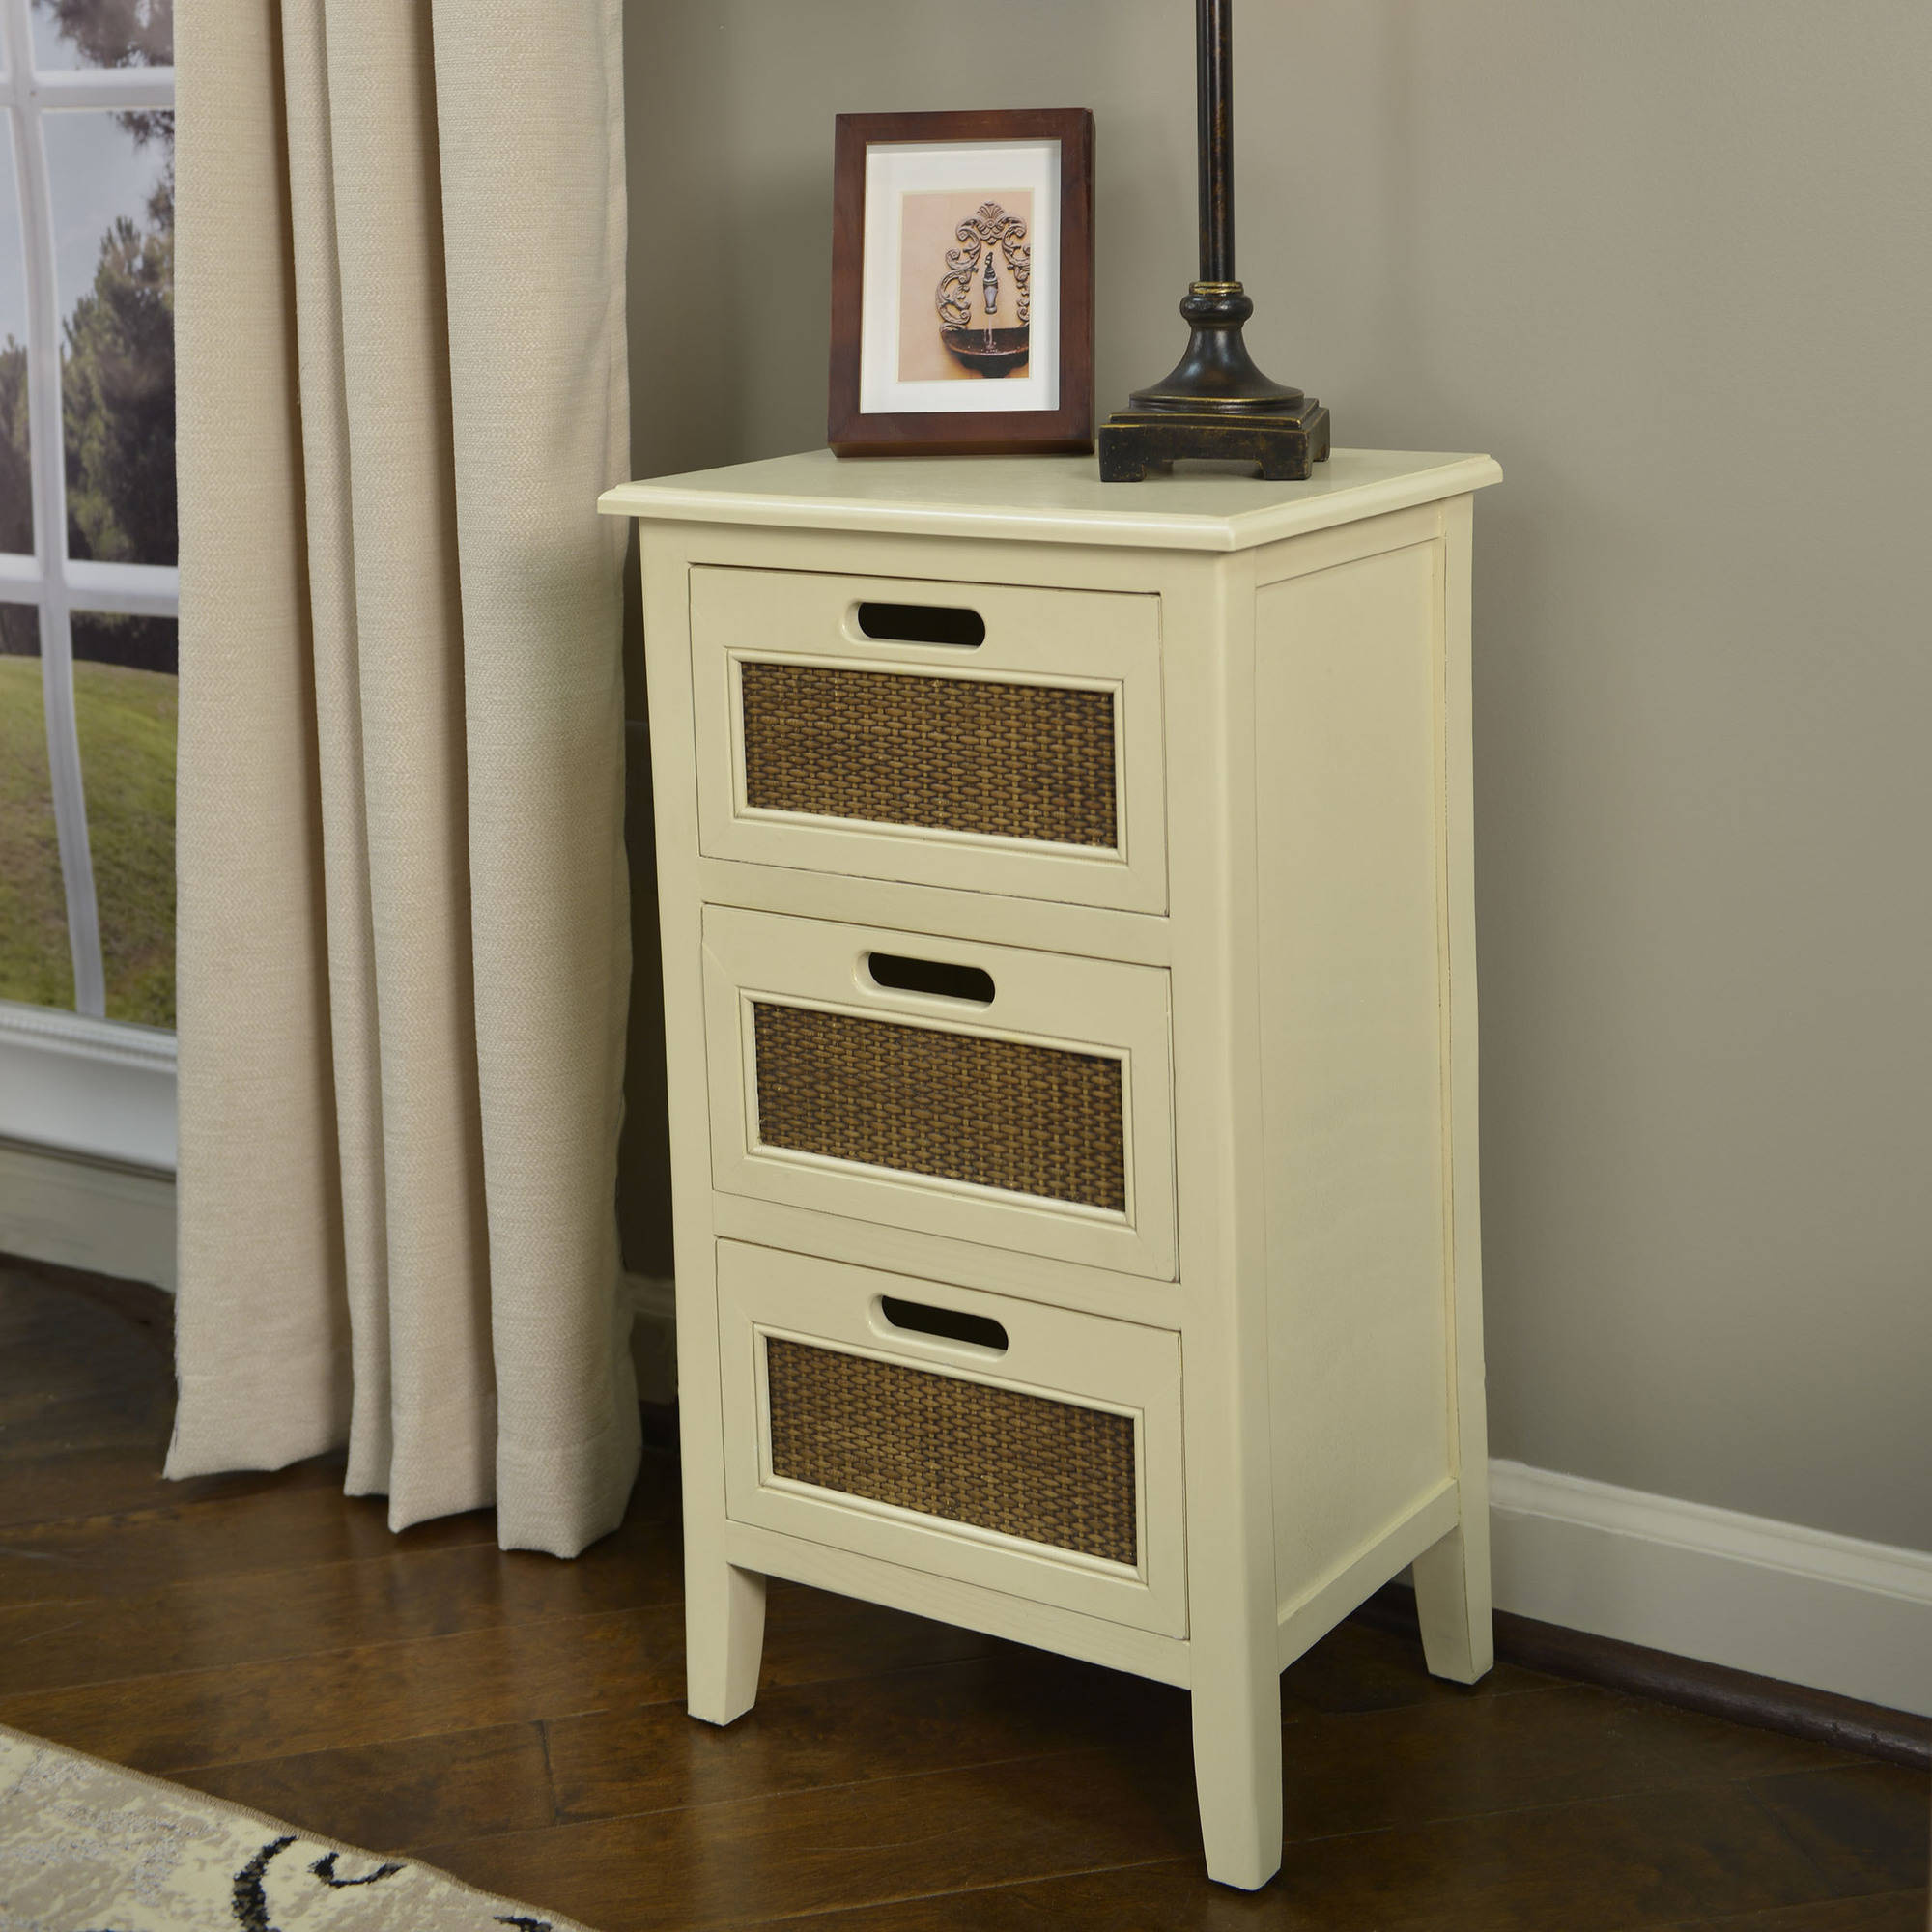 better homes and gardens wicker accent drawer table multiple colors antique armoire solid pine coffee white with drawers standard lamps gold brass hardwood tile wood end tables